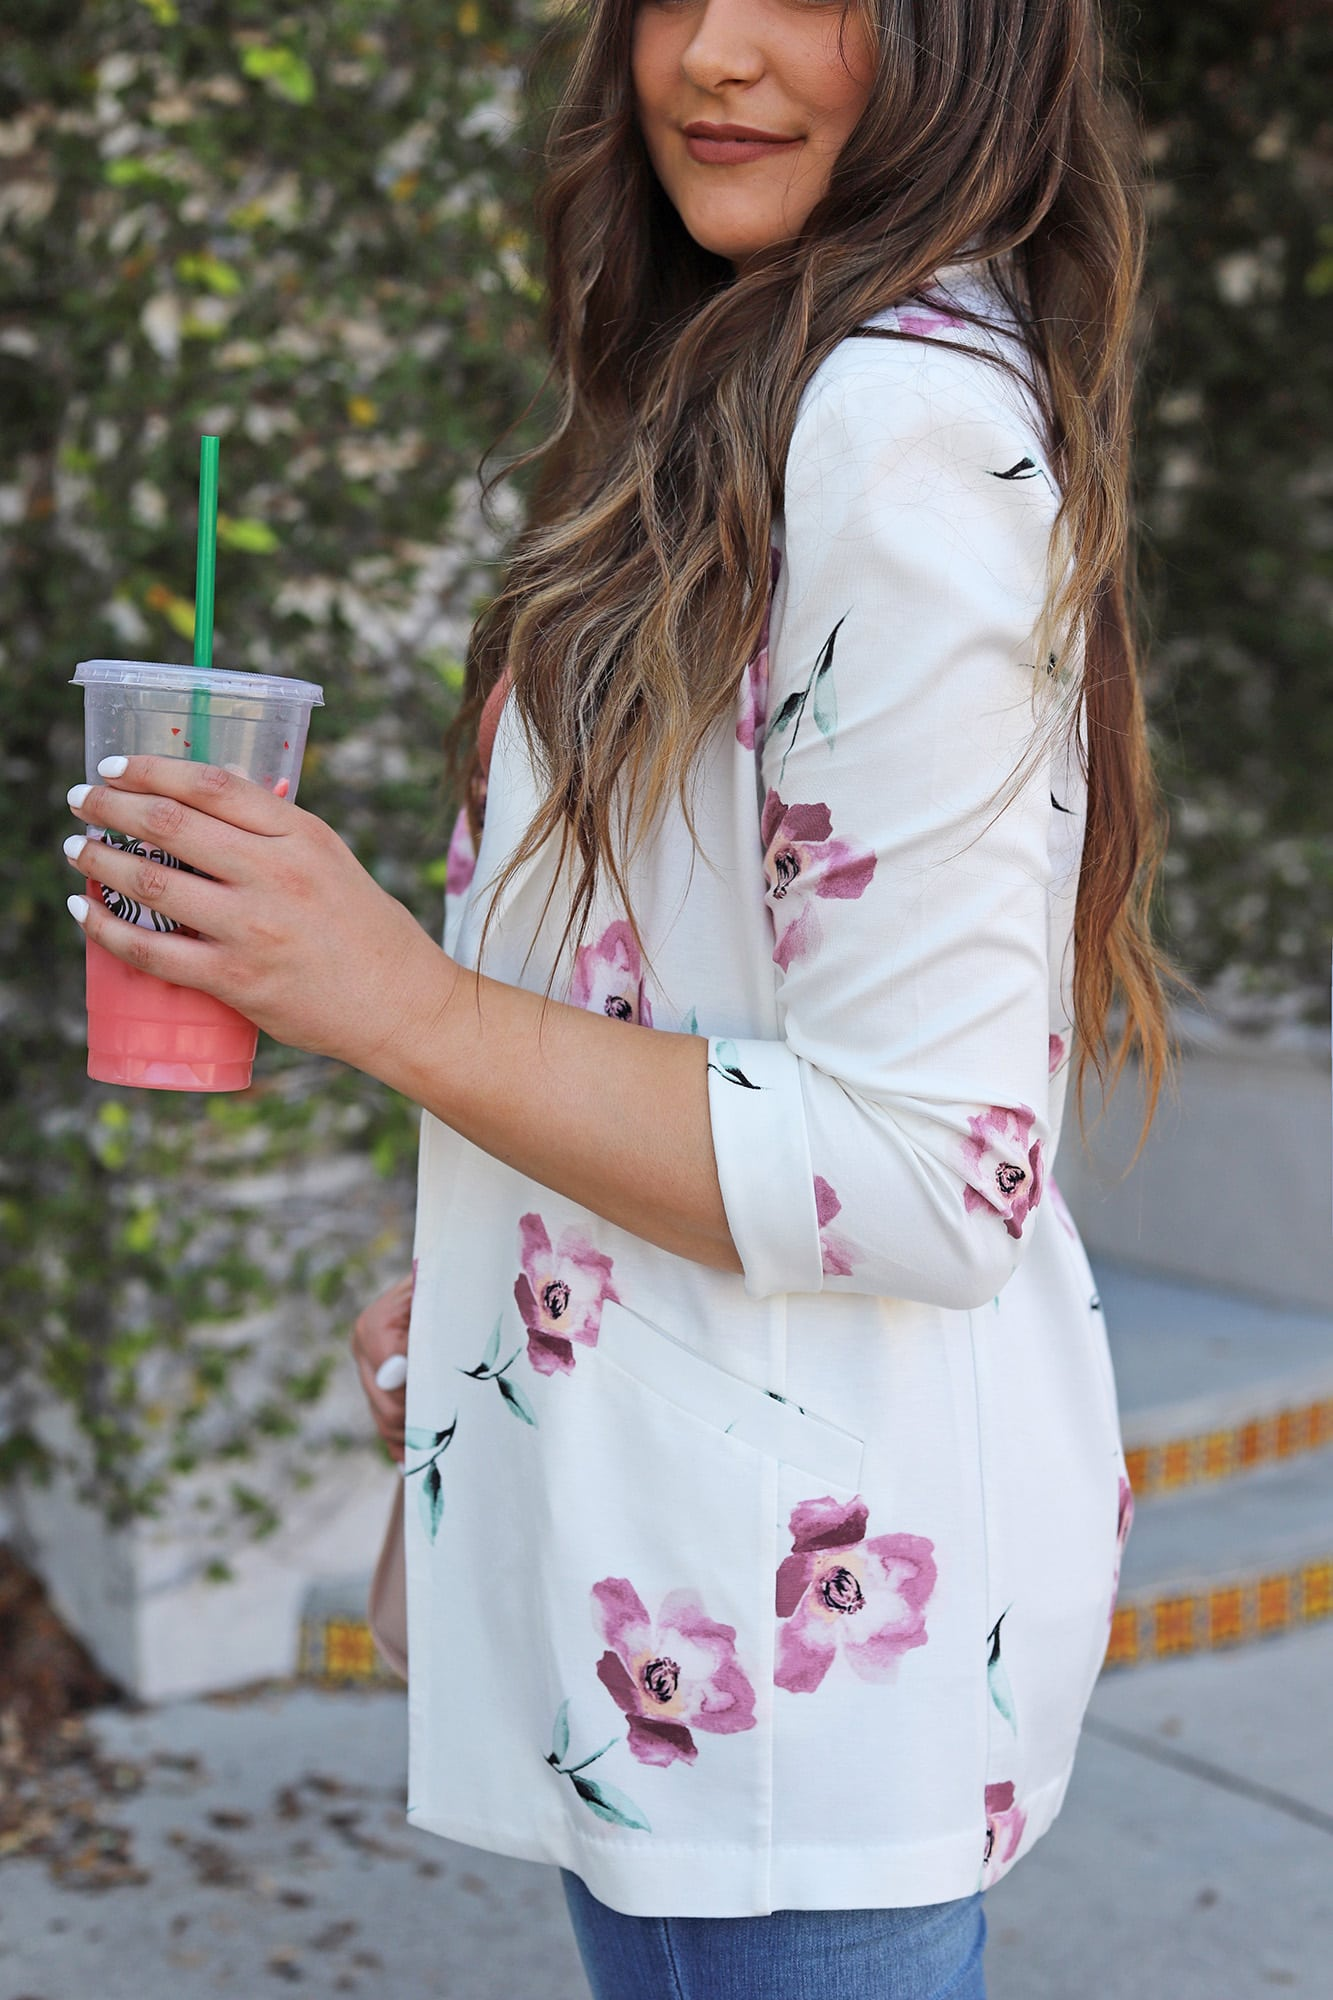 Mash elle beauty blogger | how to style floral blazer | blazer outfit | jeans and heels | starbucks pink drink | starbucks